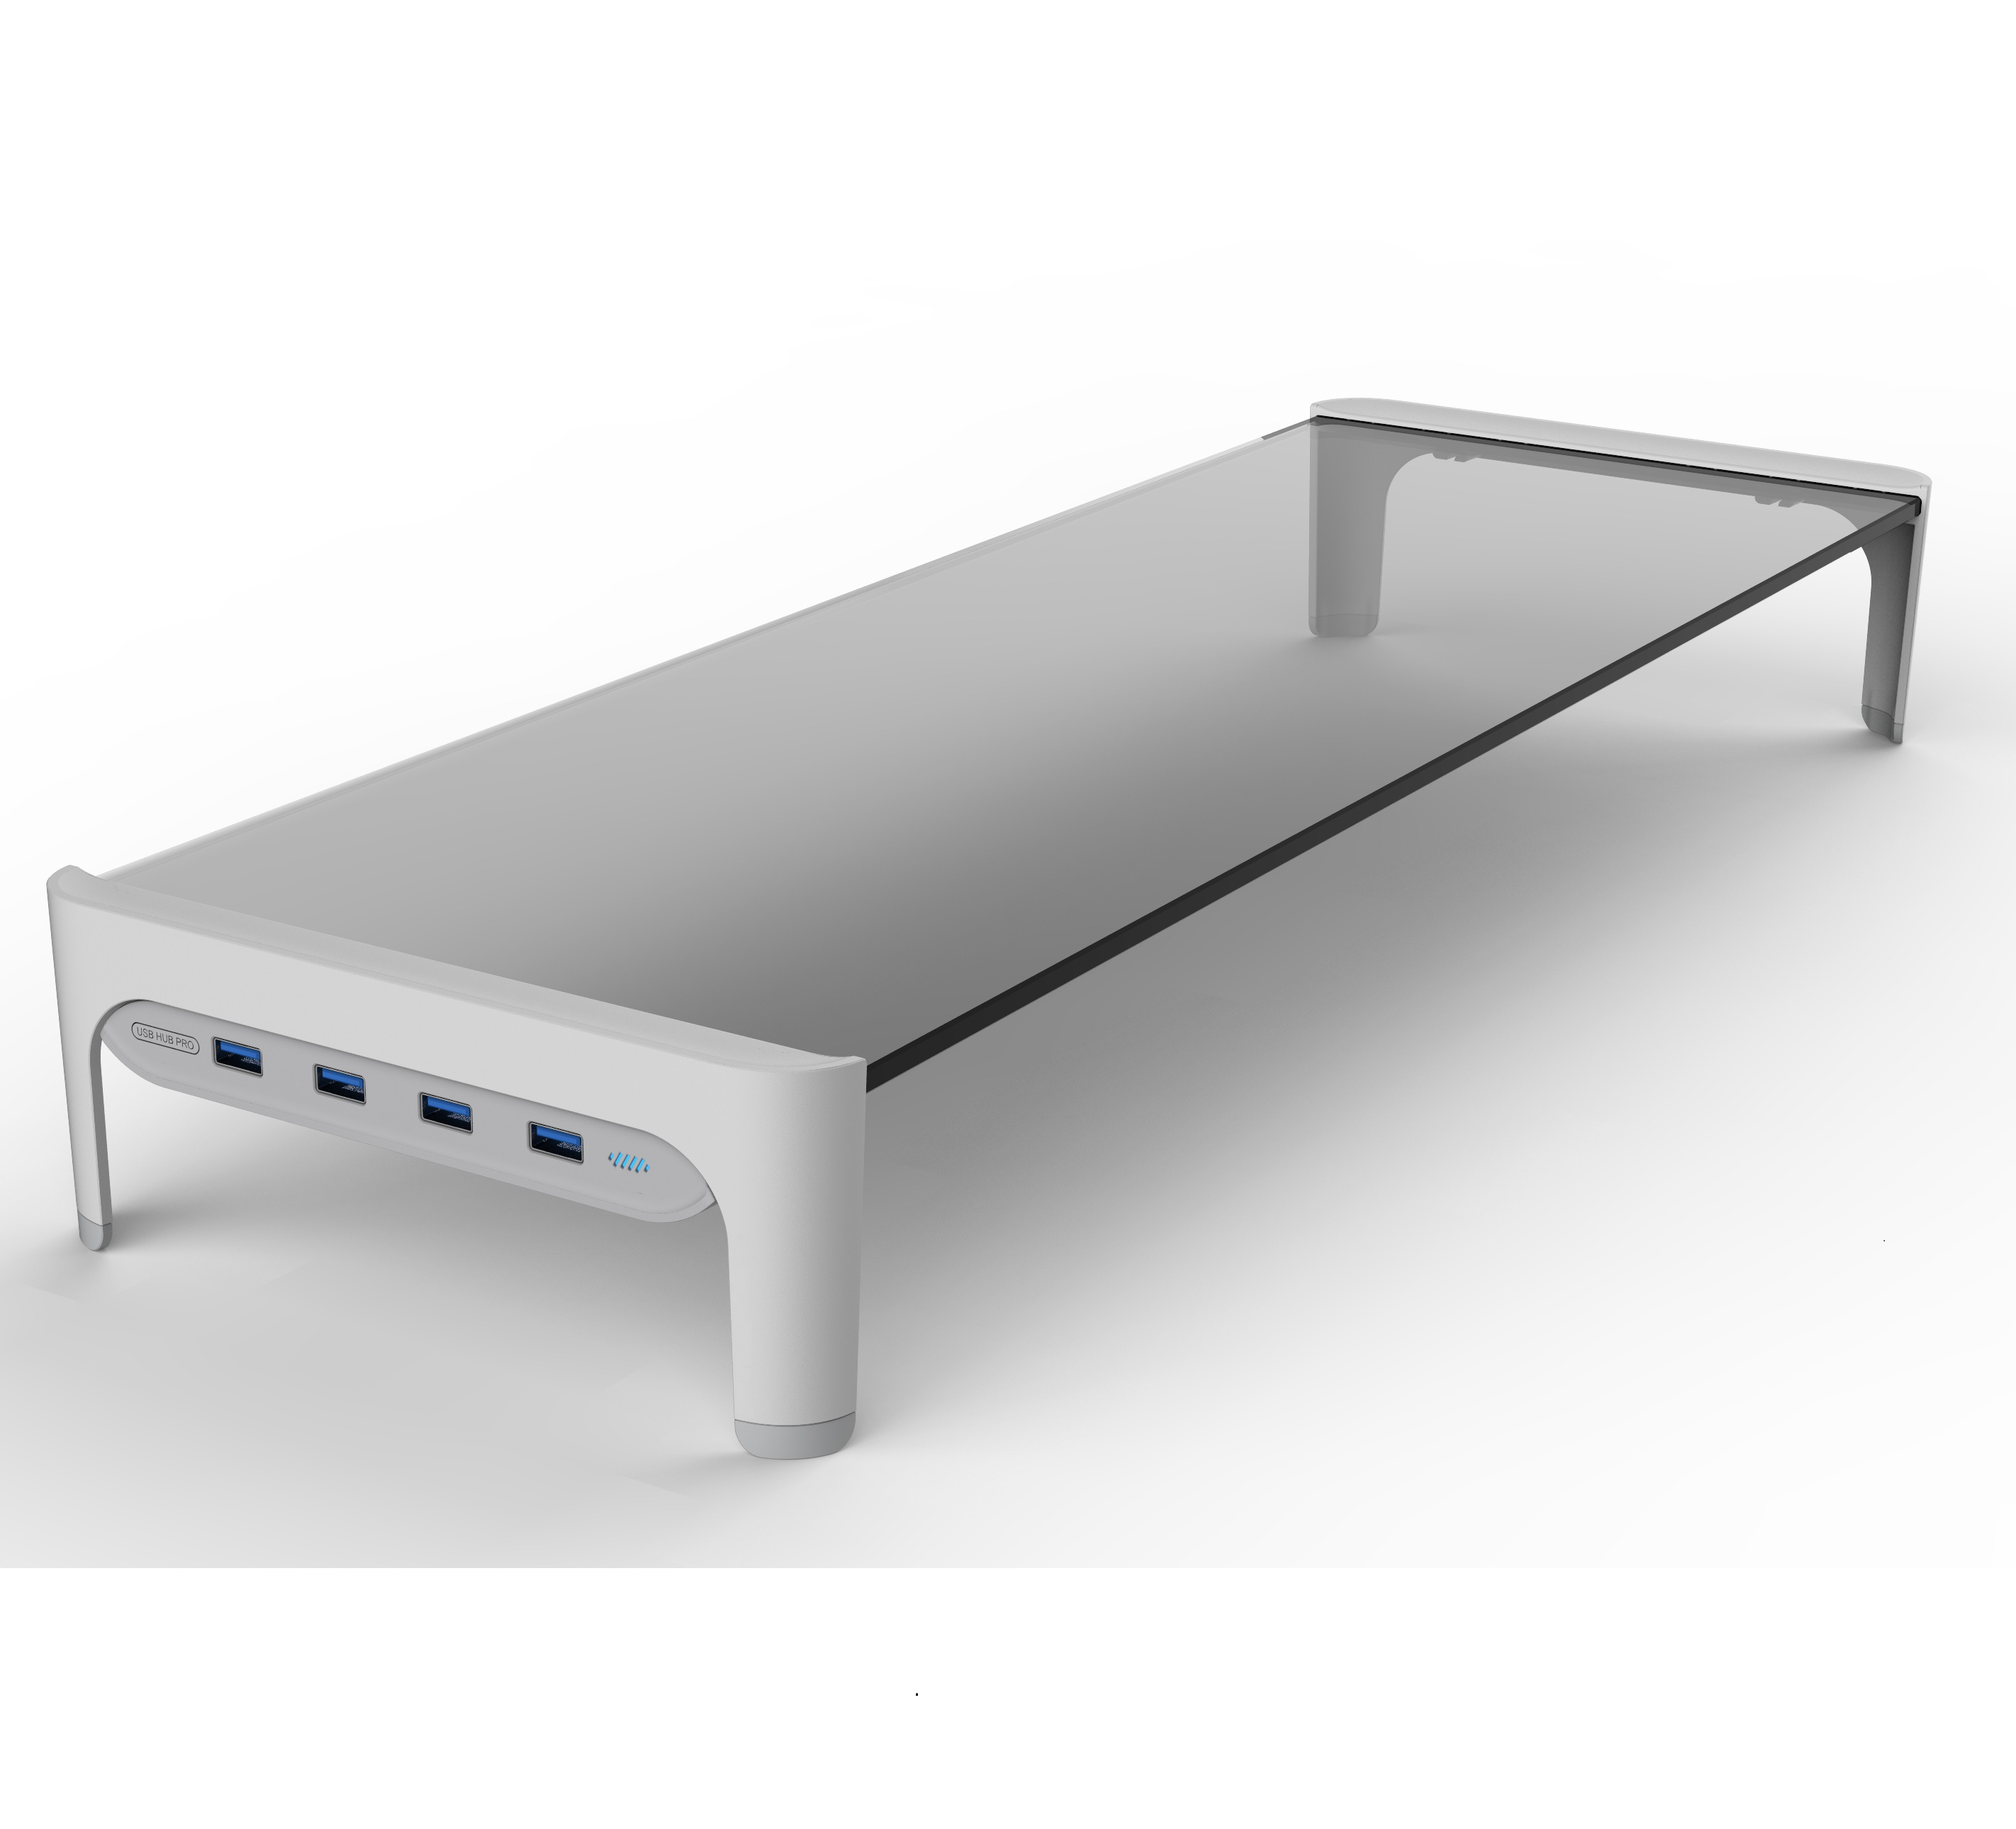 USB Monitor Stand Riser Support Transfer Data And Charging,Keyboard And Mouse Storage Desk